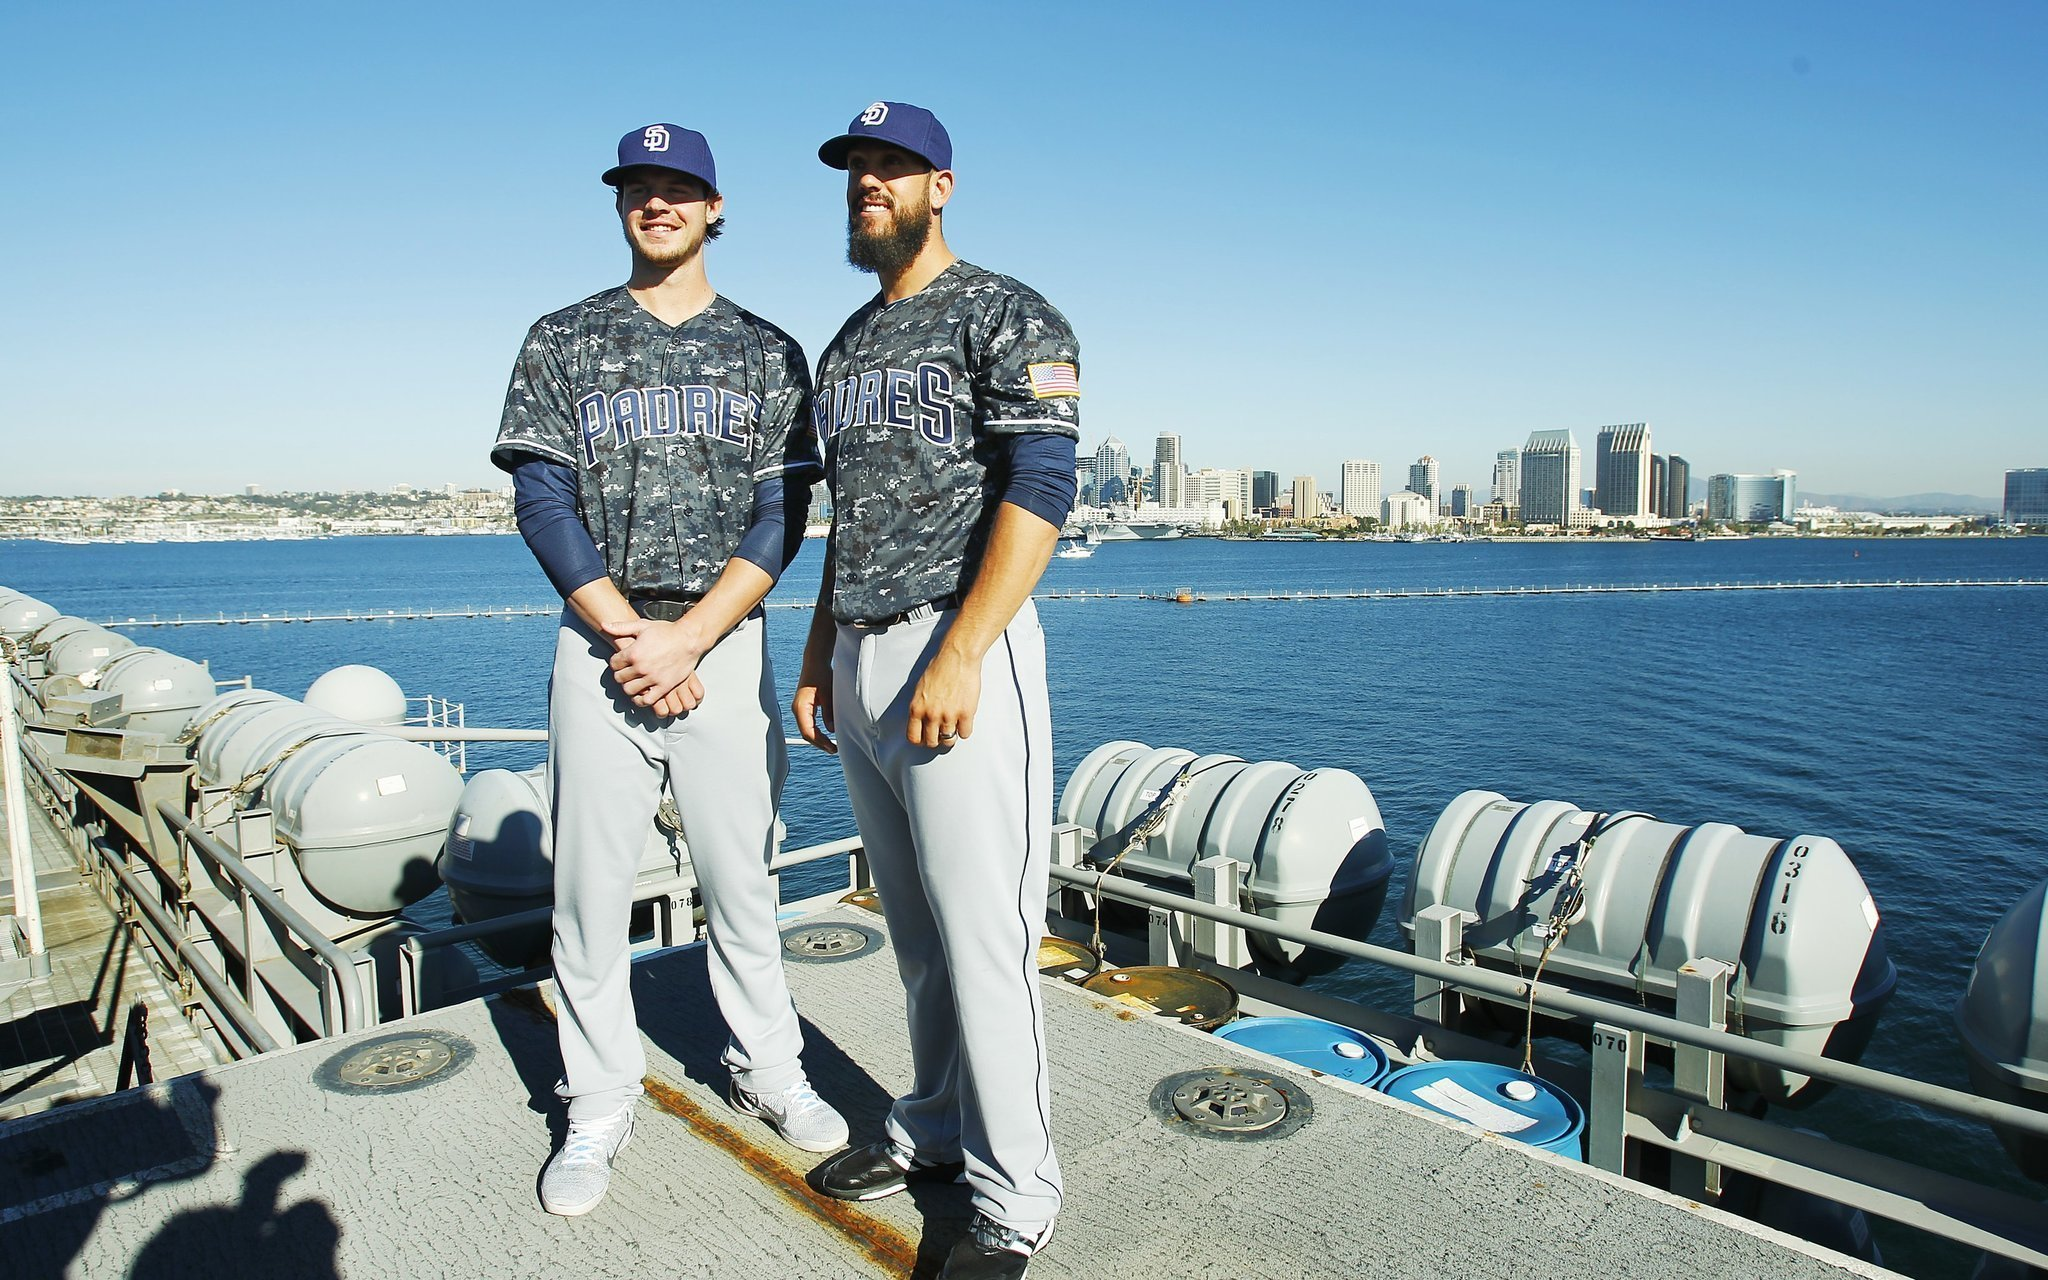 San Diego Padres Blue Camo Jersey For Cheap